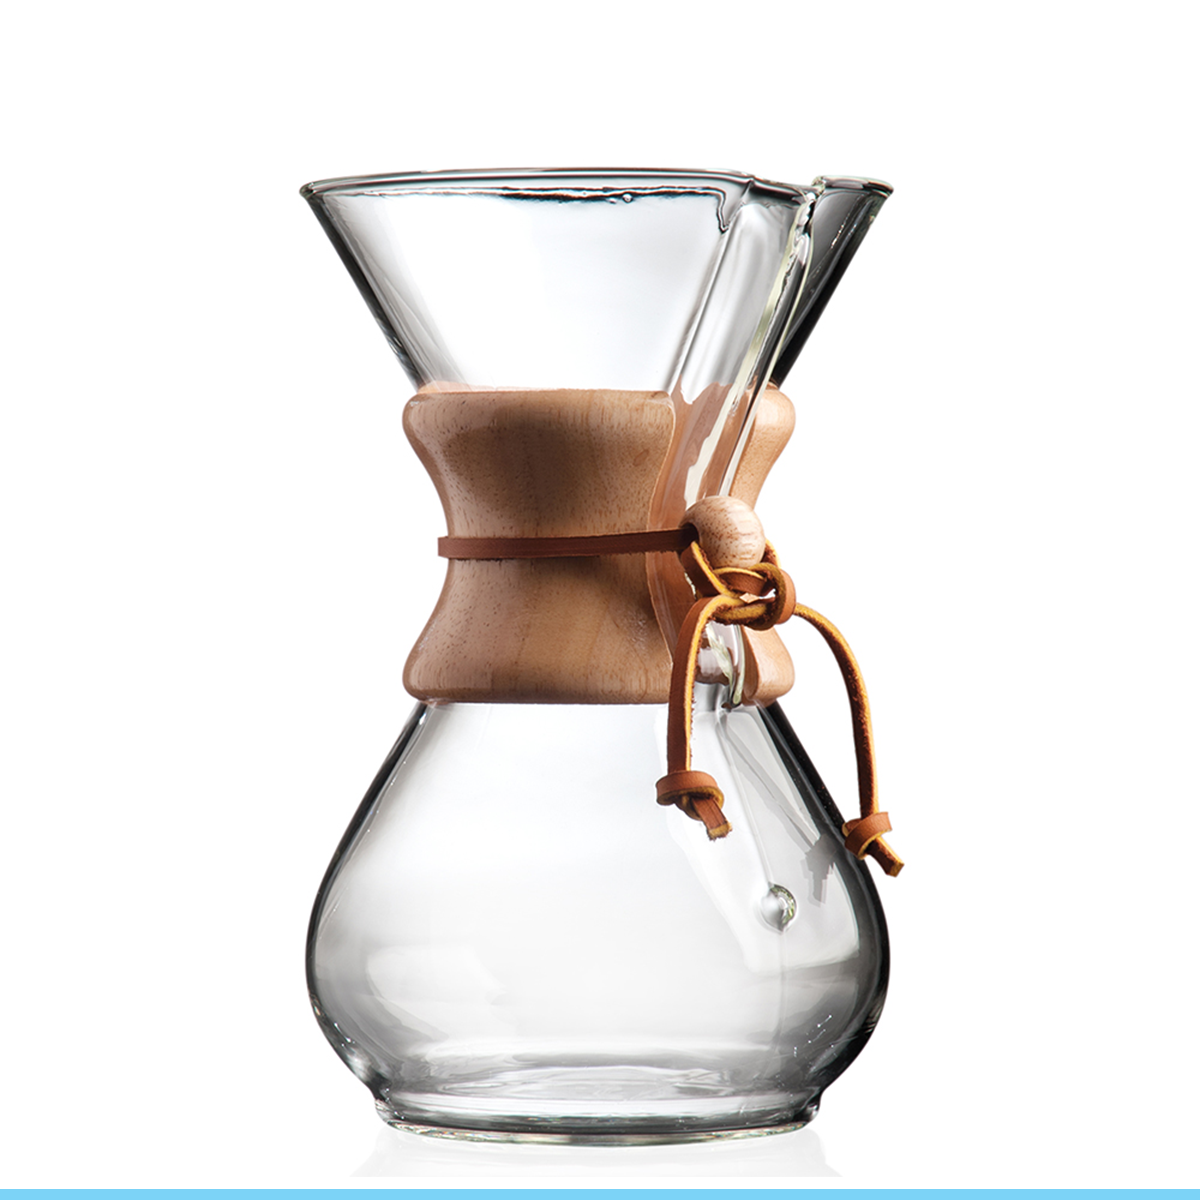 https://store.chemexcoffeemaker.com/media/catalog/product/c/h/chemex-classic-6cup-detail_1.png